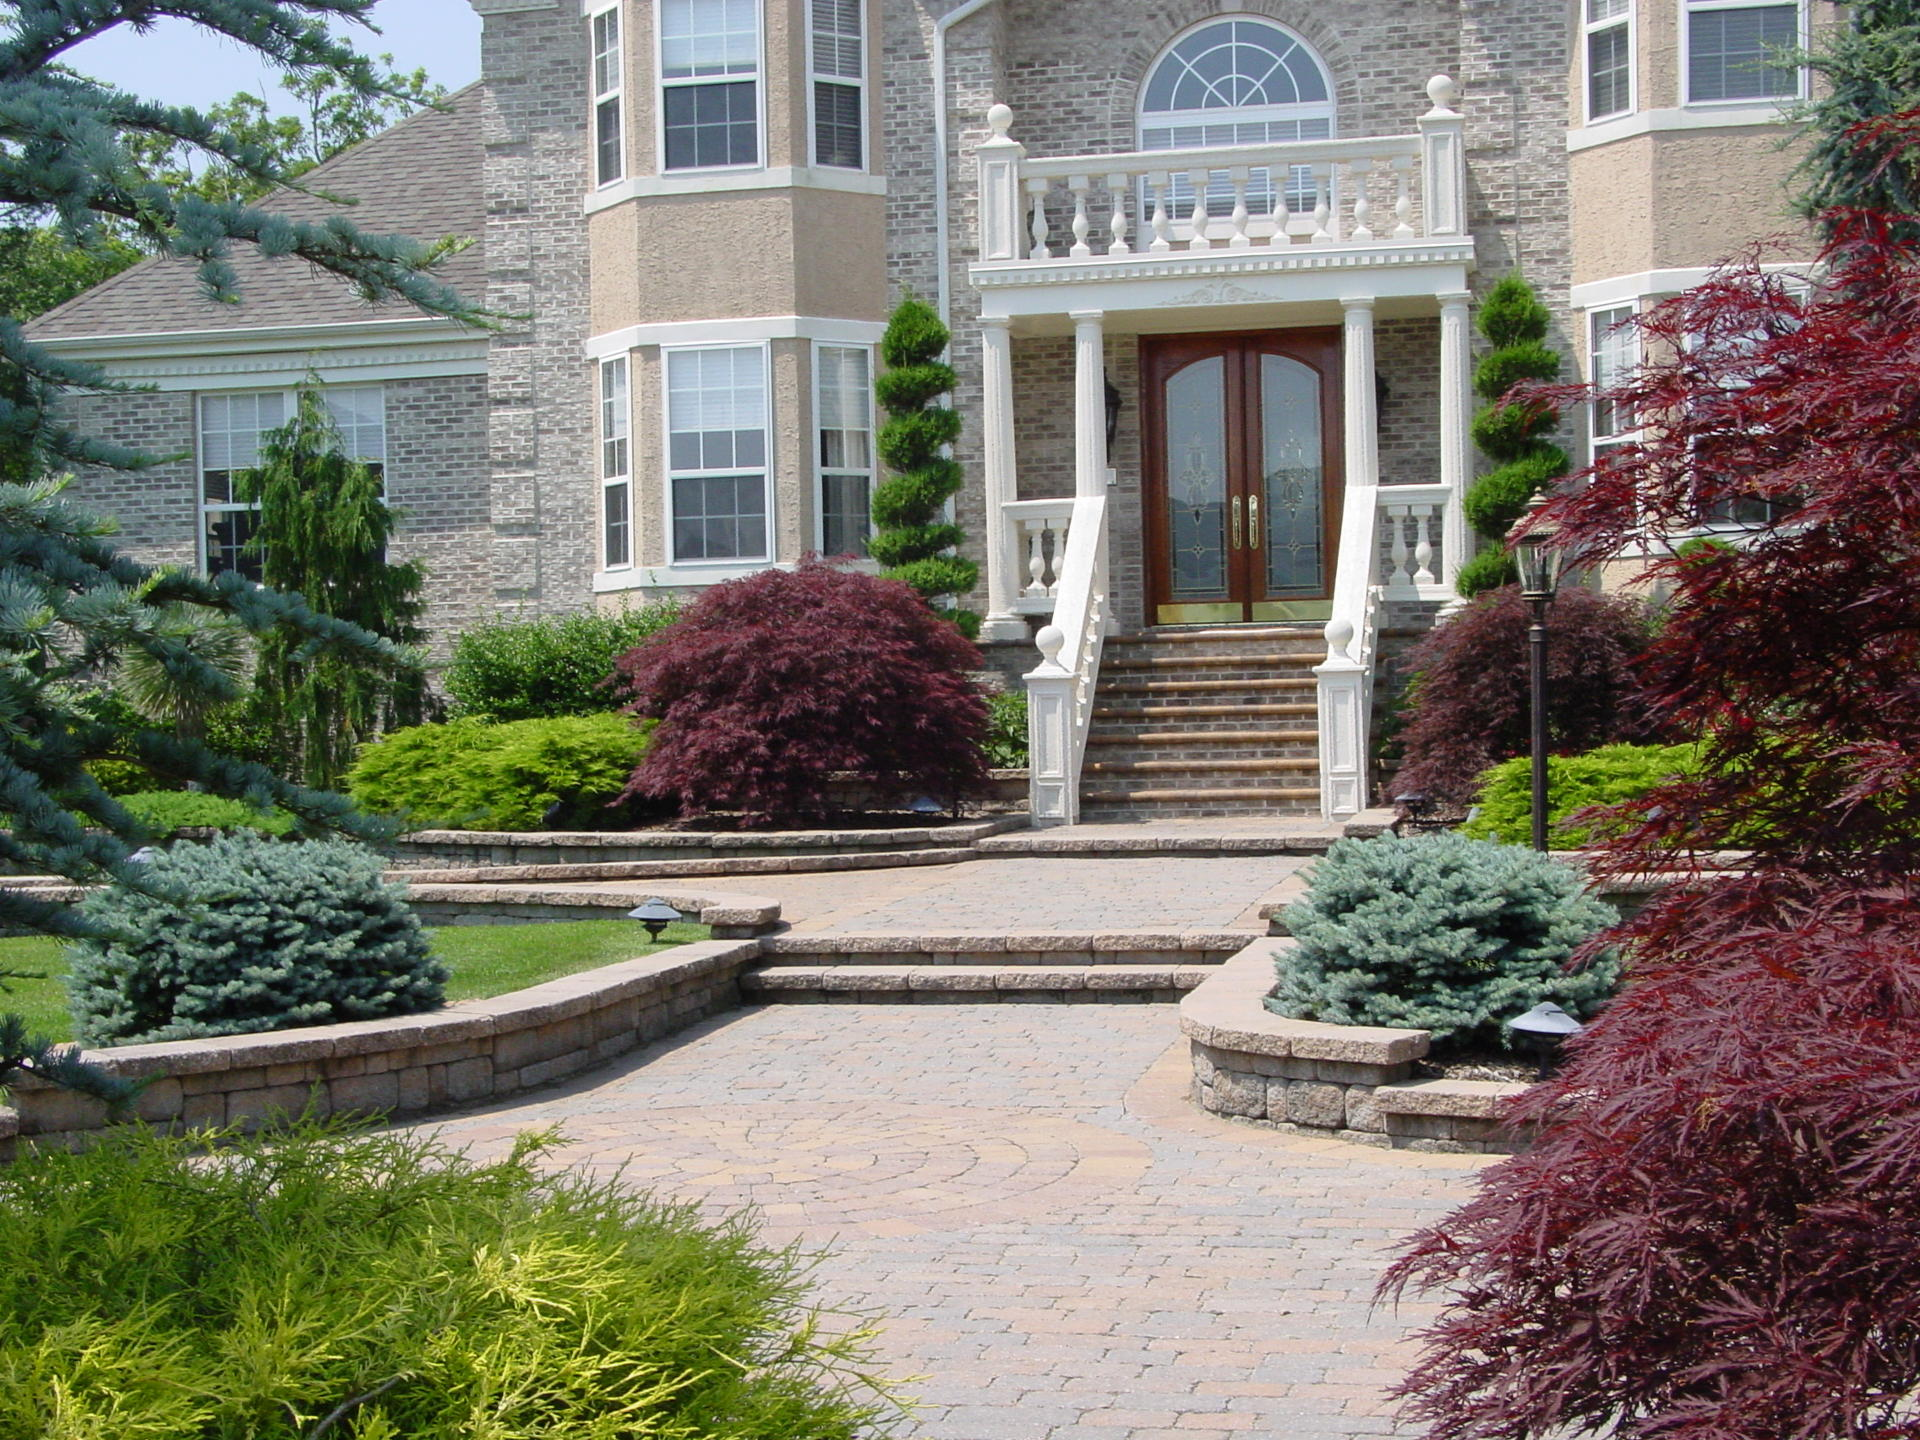 Landscaping, Hardscaping, Water Features